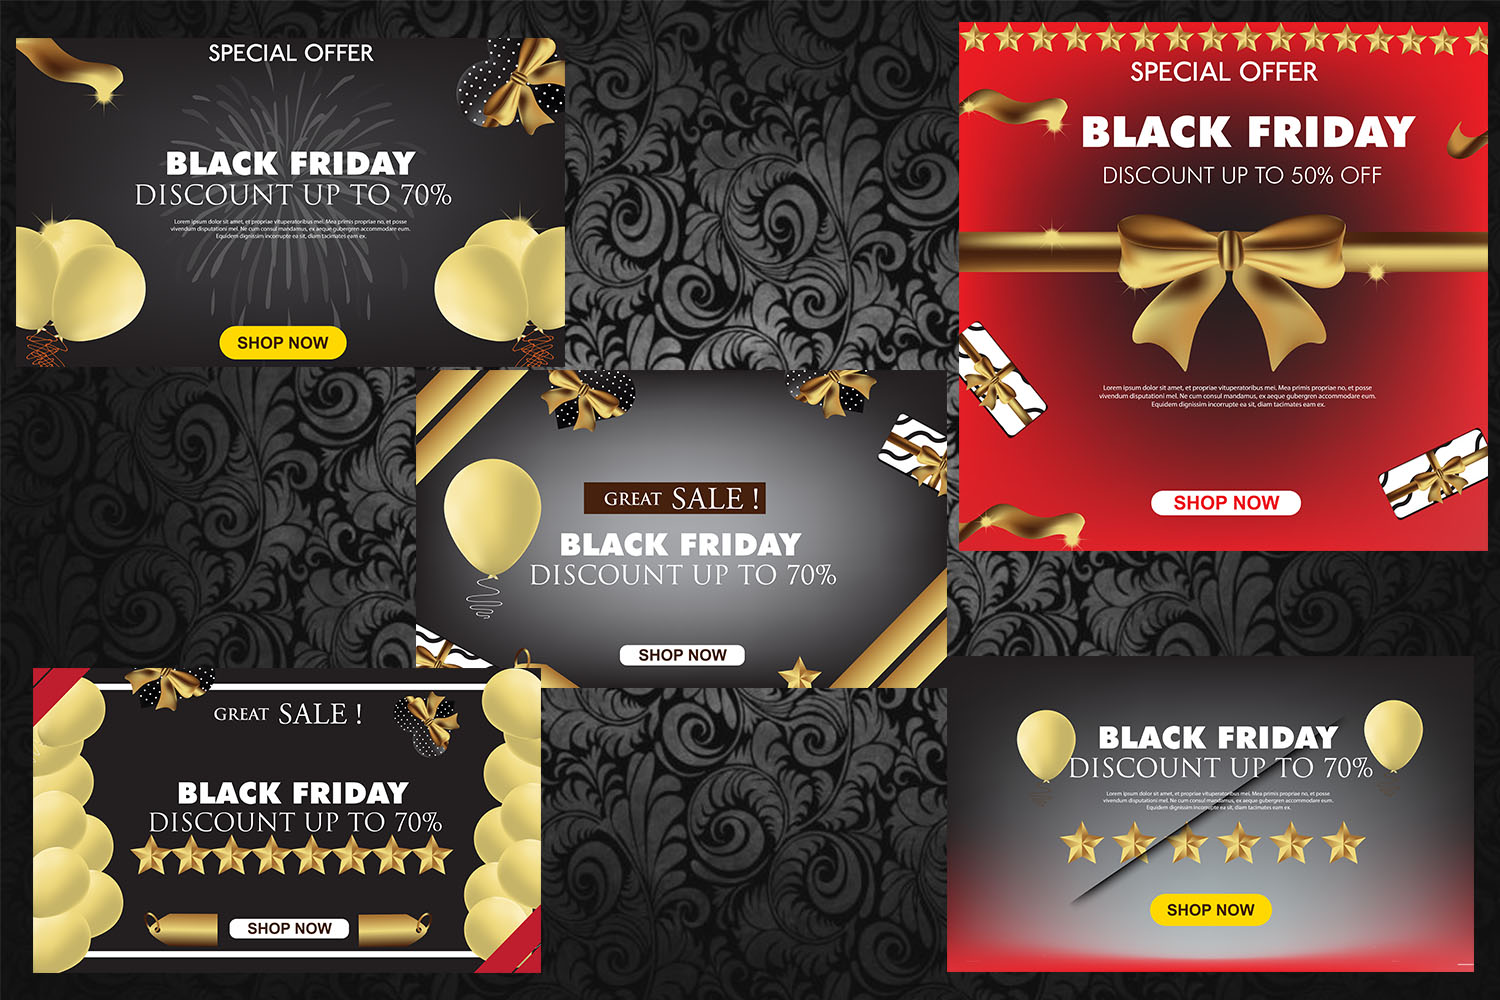 Black Friday Sale Template example image 2